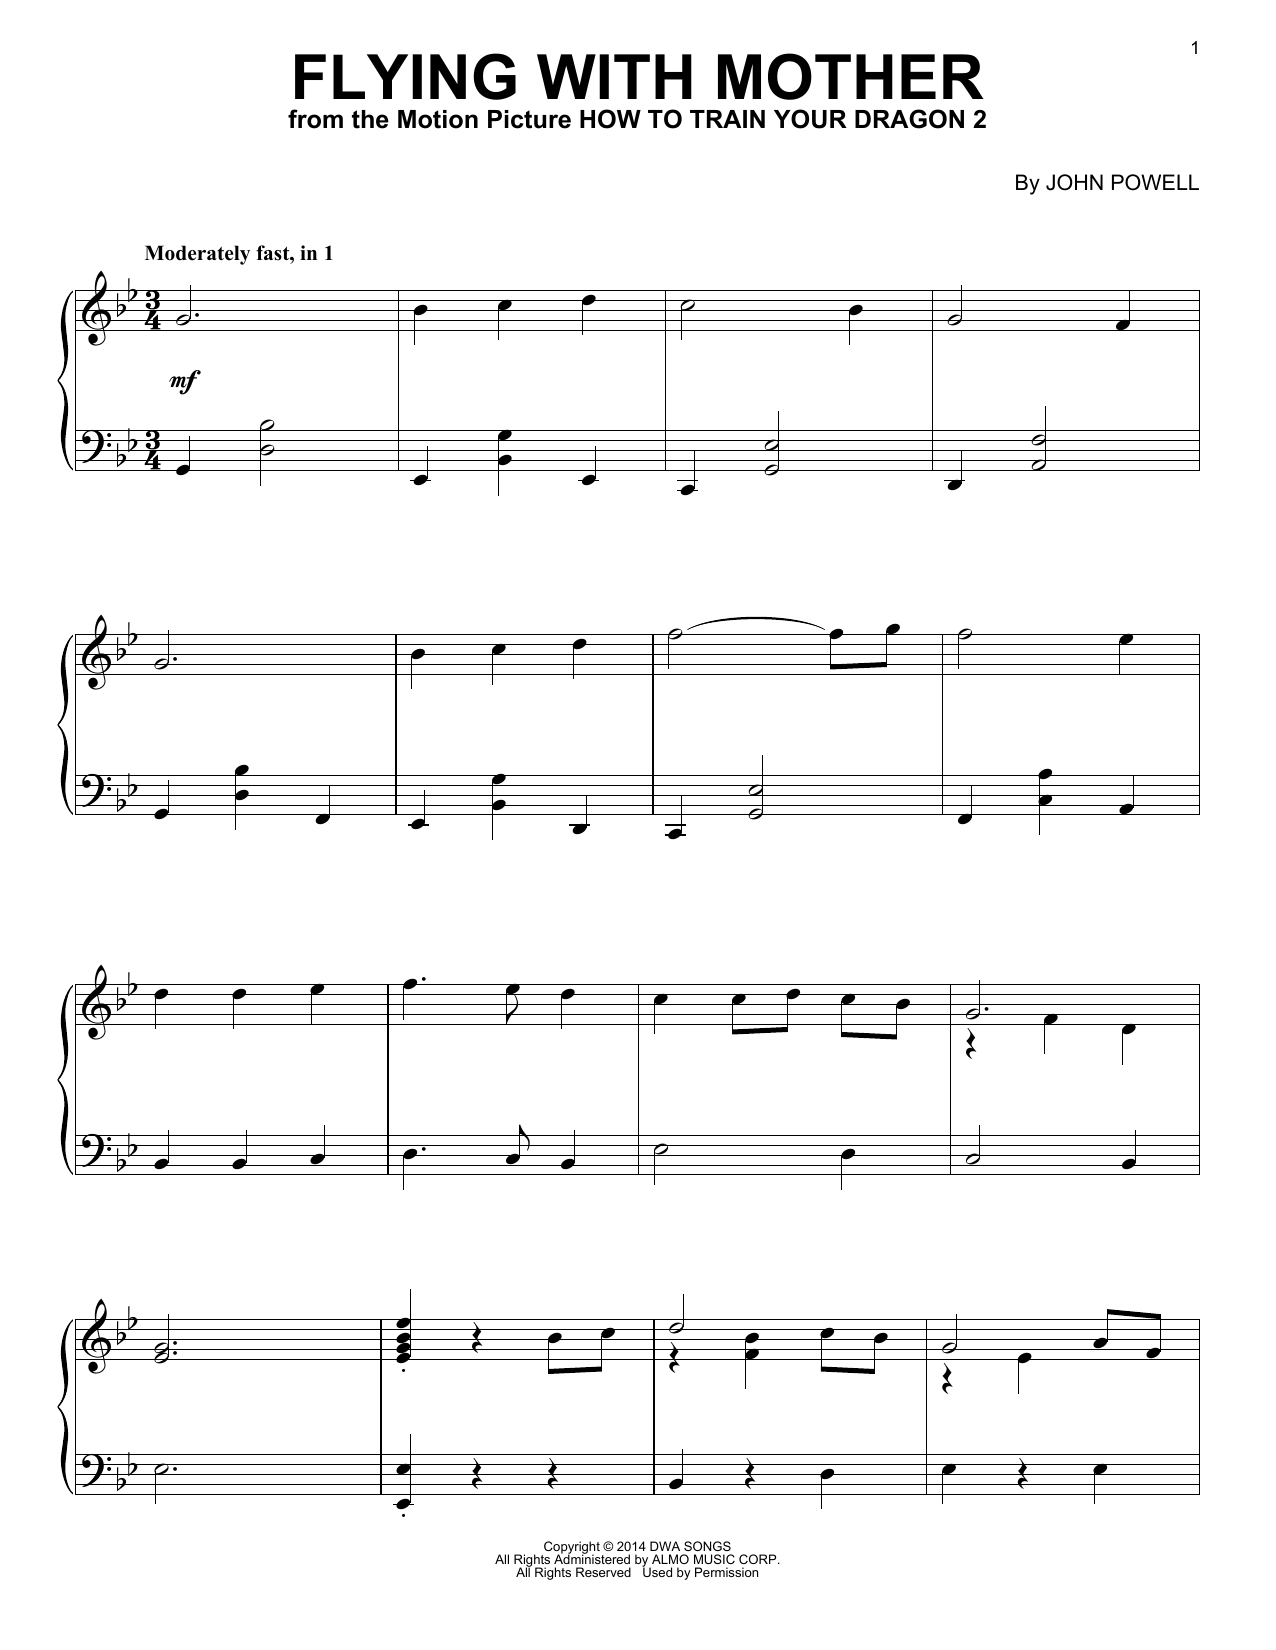 John Powell Flying With Mother From How To Train Your Dragon 2 Sheet Music Pdf Notes Chords Children Score Piano Solo Download Printable Sku 157384